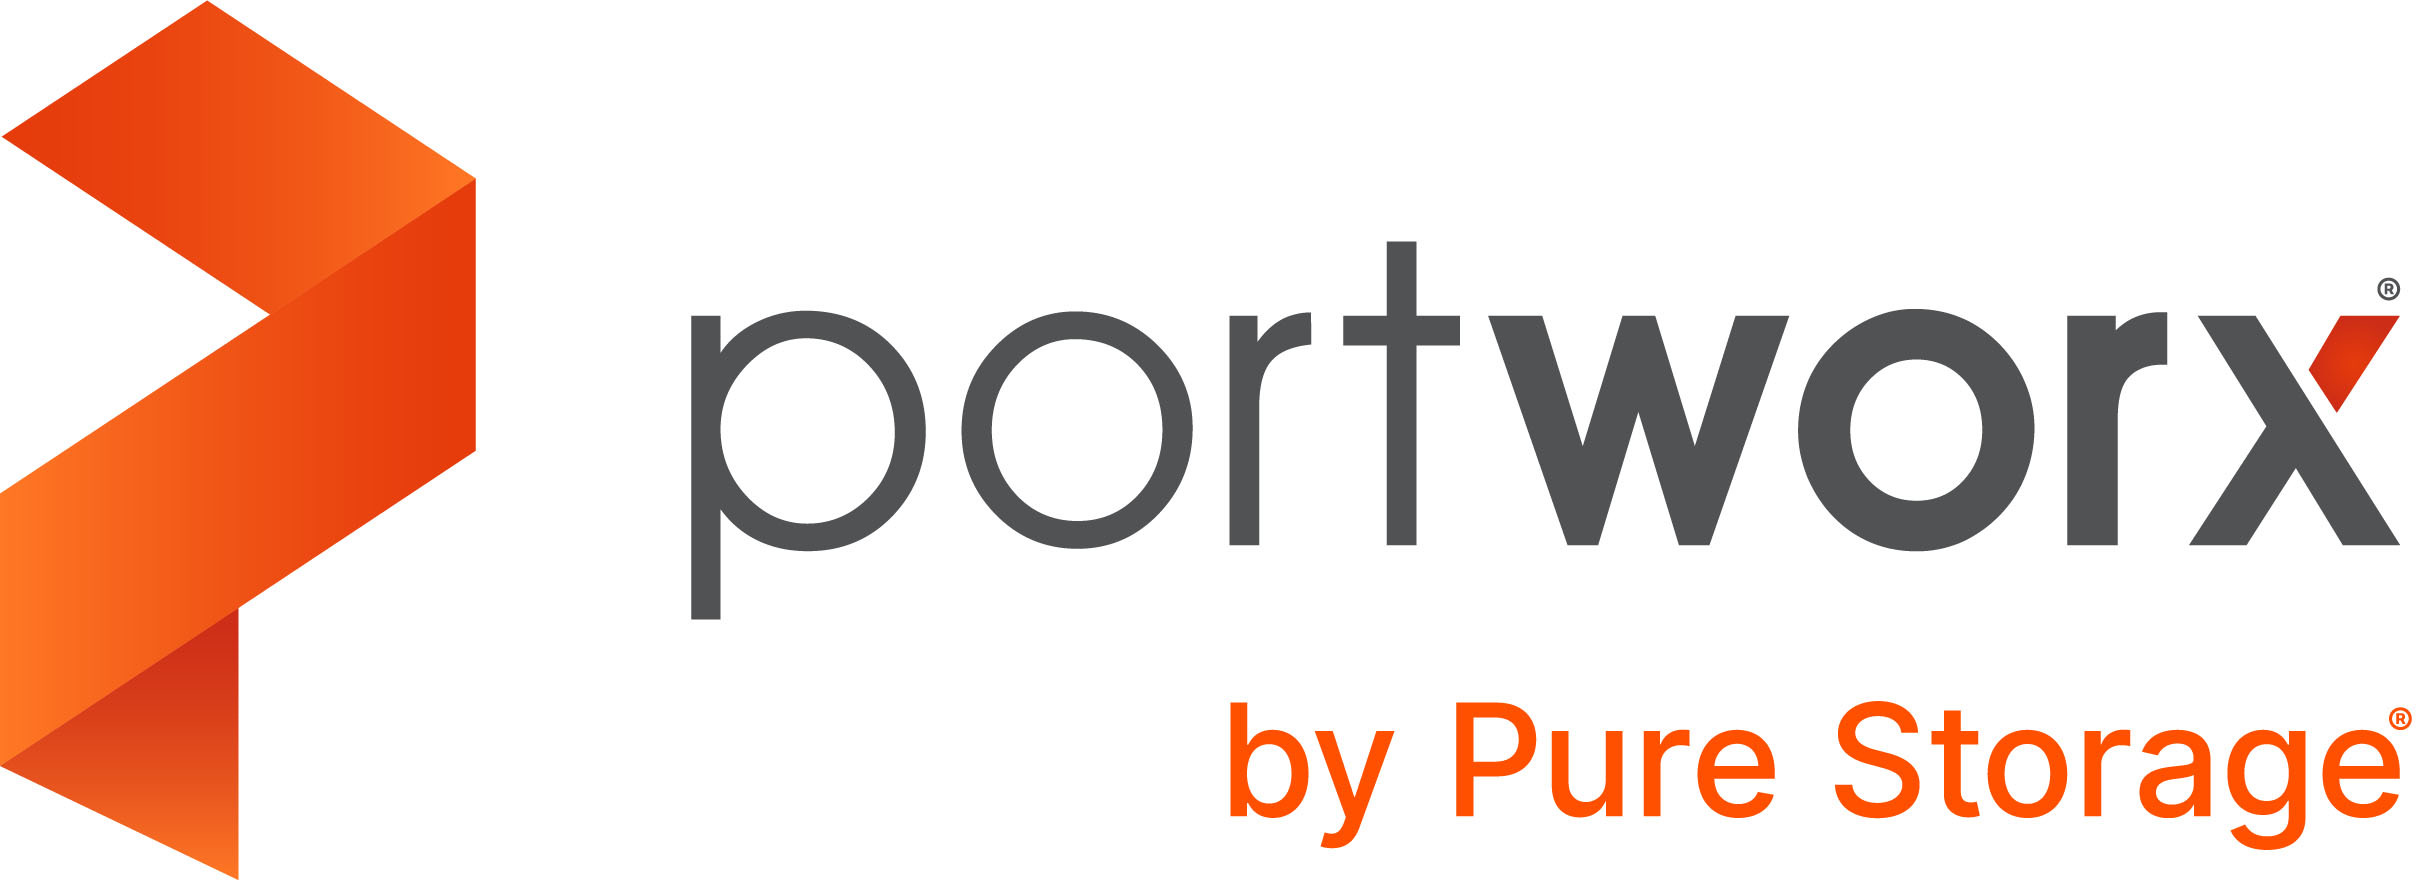 Portworx Partners with Google Cloud to Enable Mission Critical